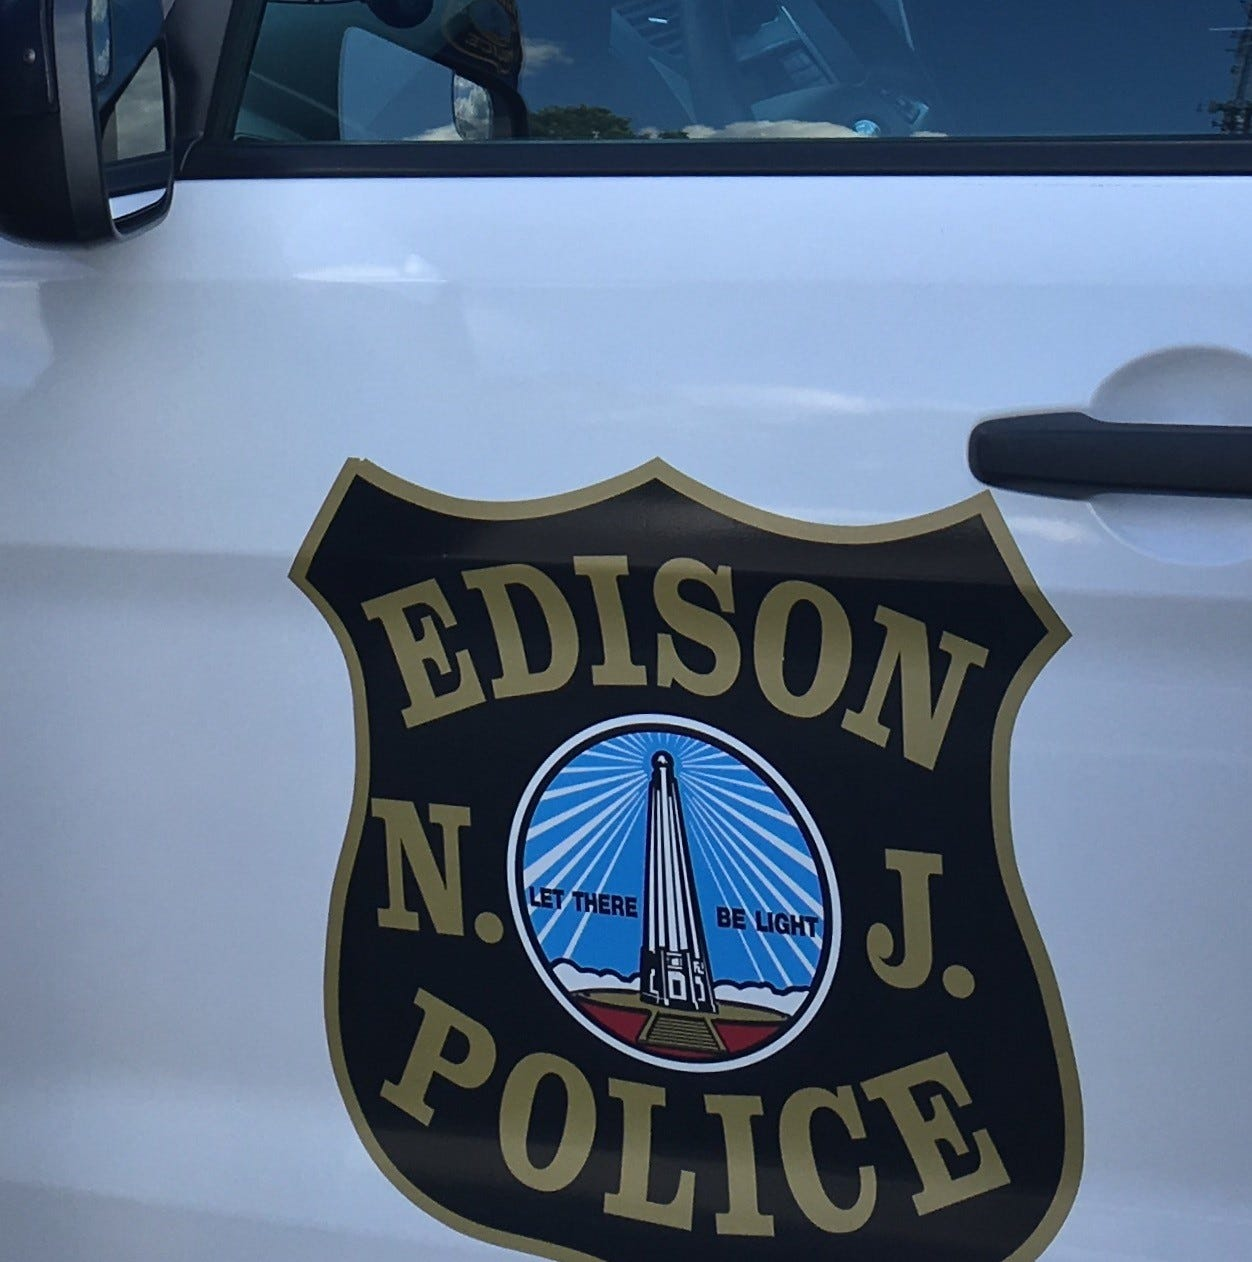 Edison man charged in crash that seriously injured woman, 86